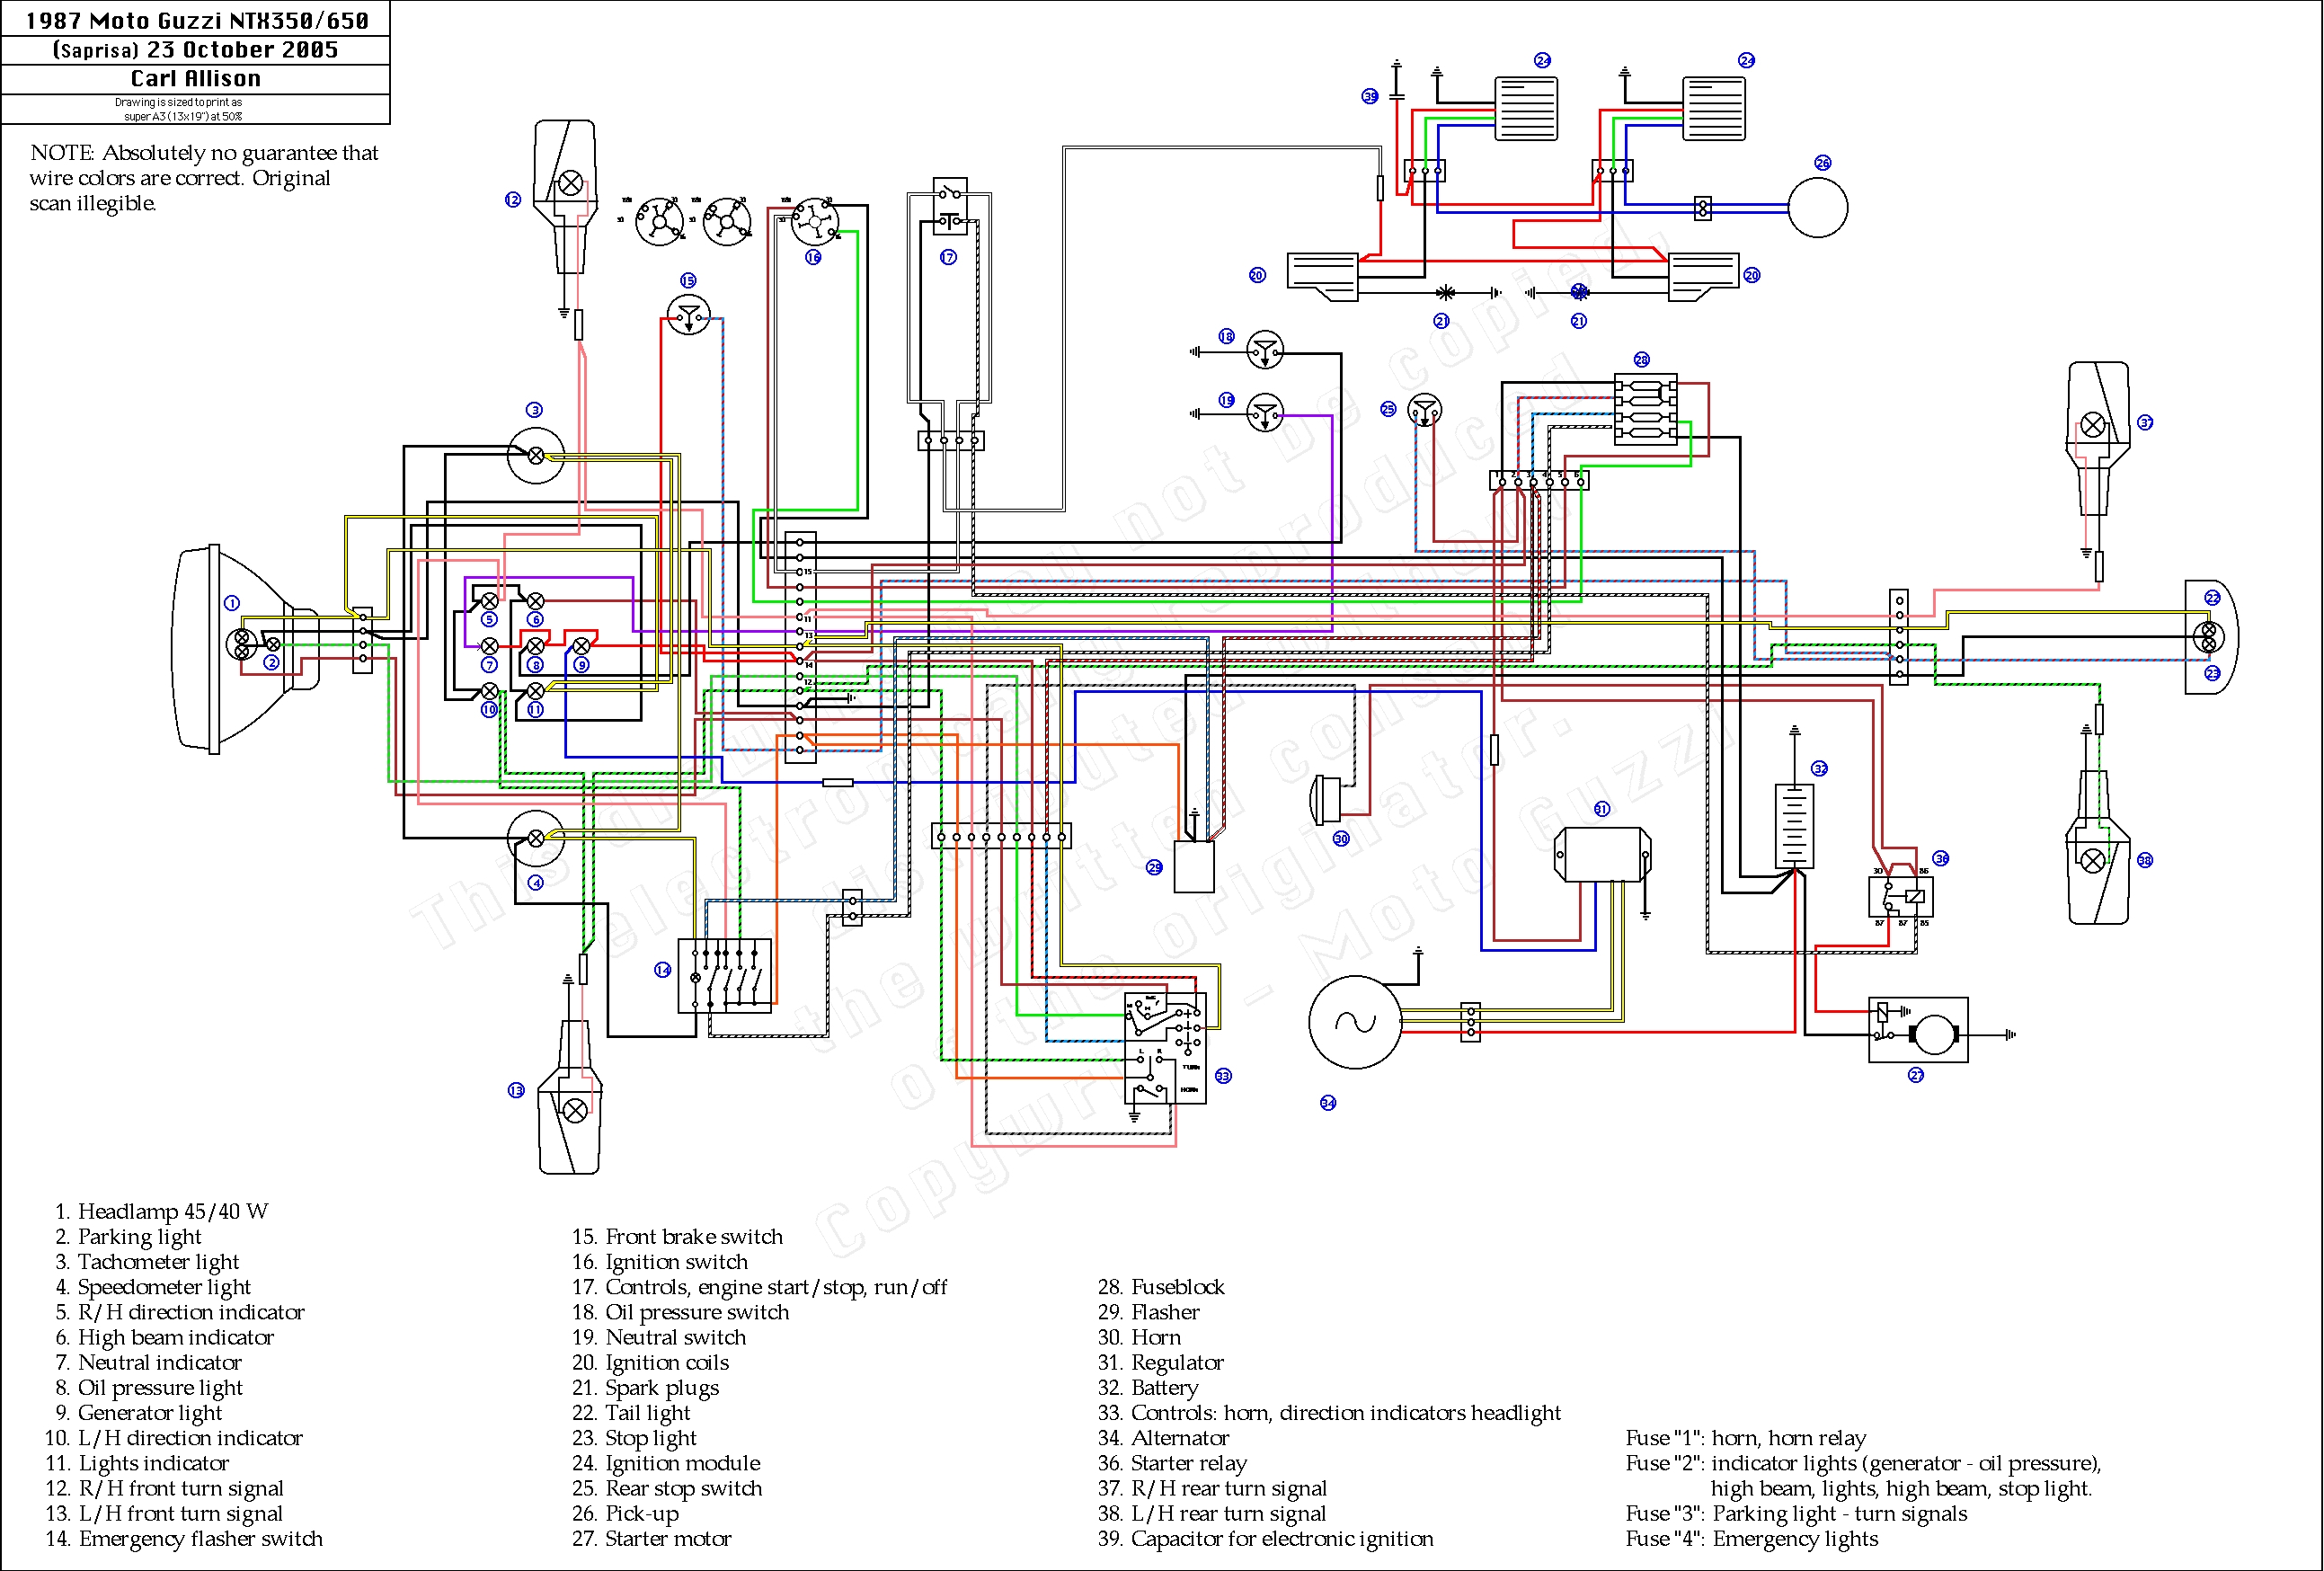 Weekend Warrior 1800 Wiring Diagram 05 Dodge Ram Fuse Box For Wiring Diagram Schematics